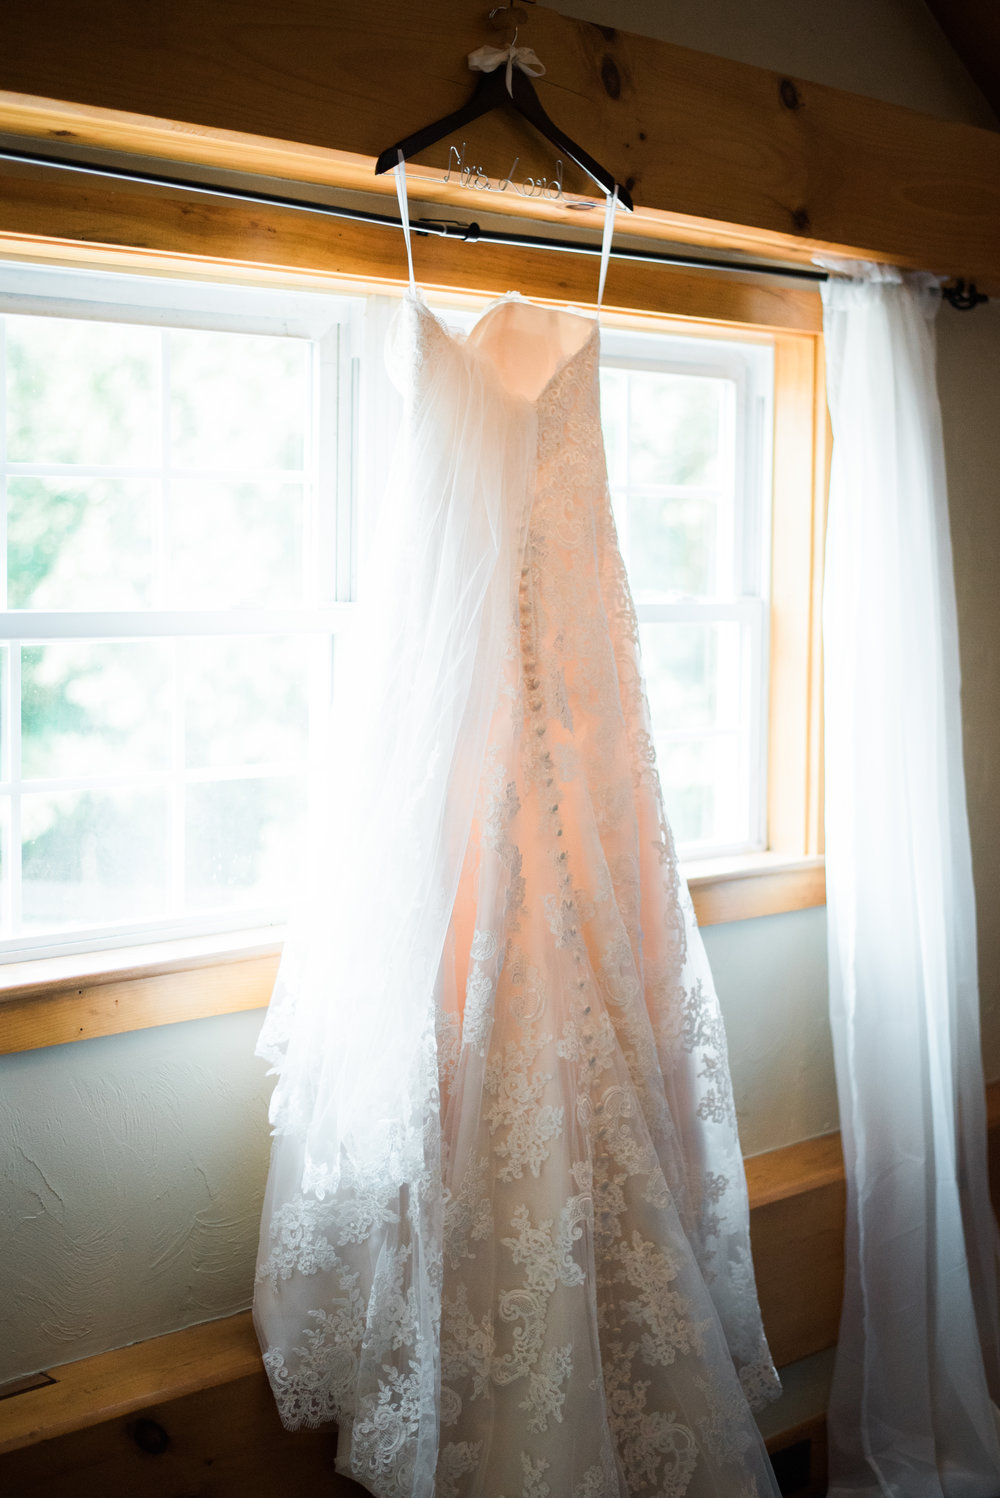 Jessica K Feiden Photography_Anne Marie + Tom's Sneak Peek-5.jpg